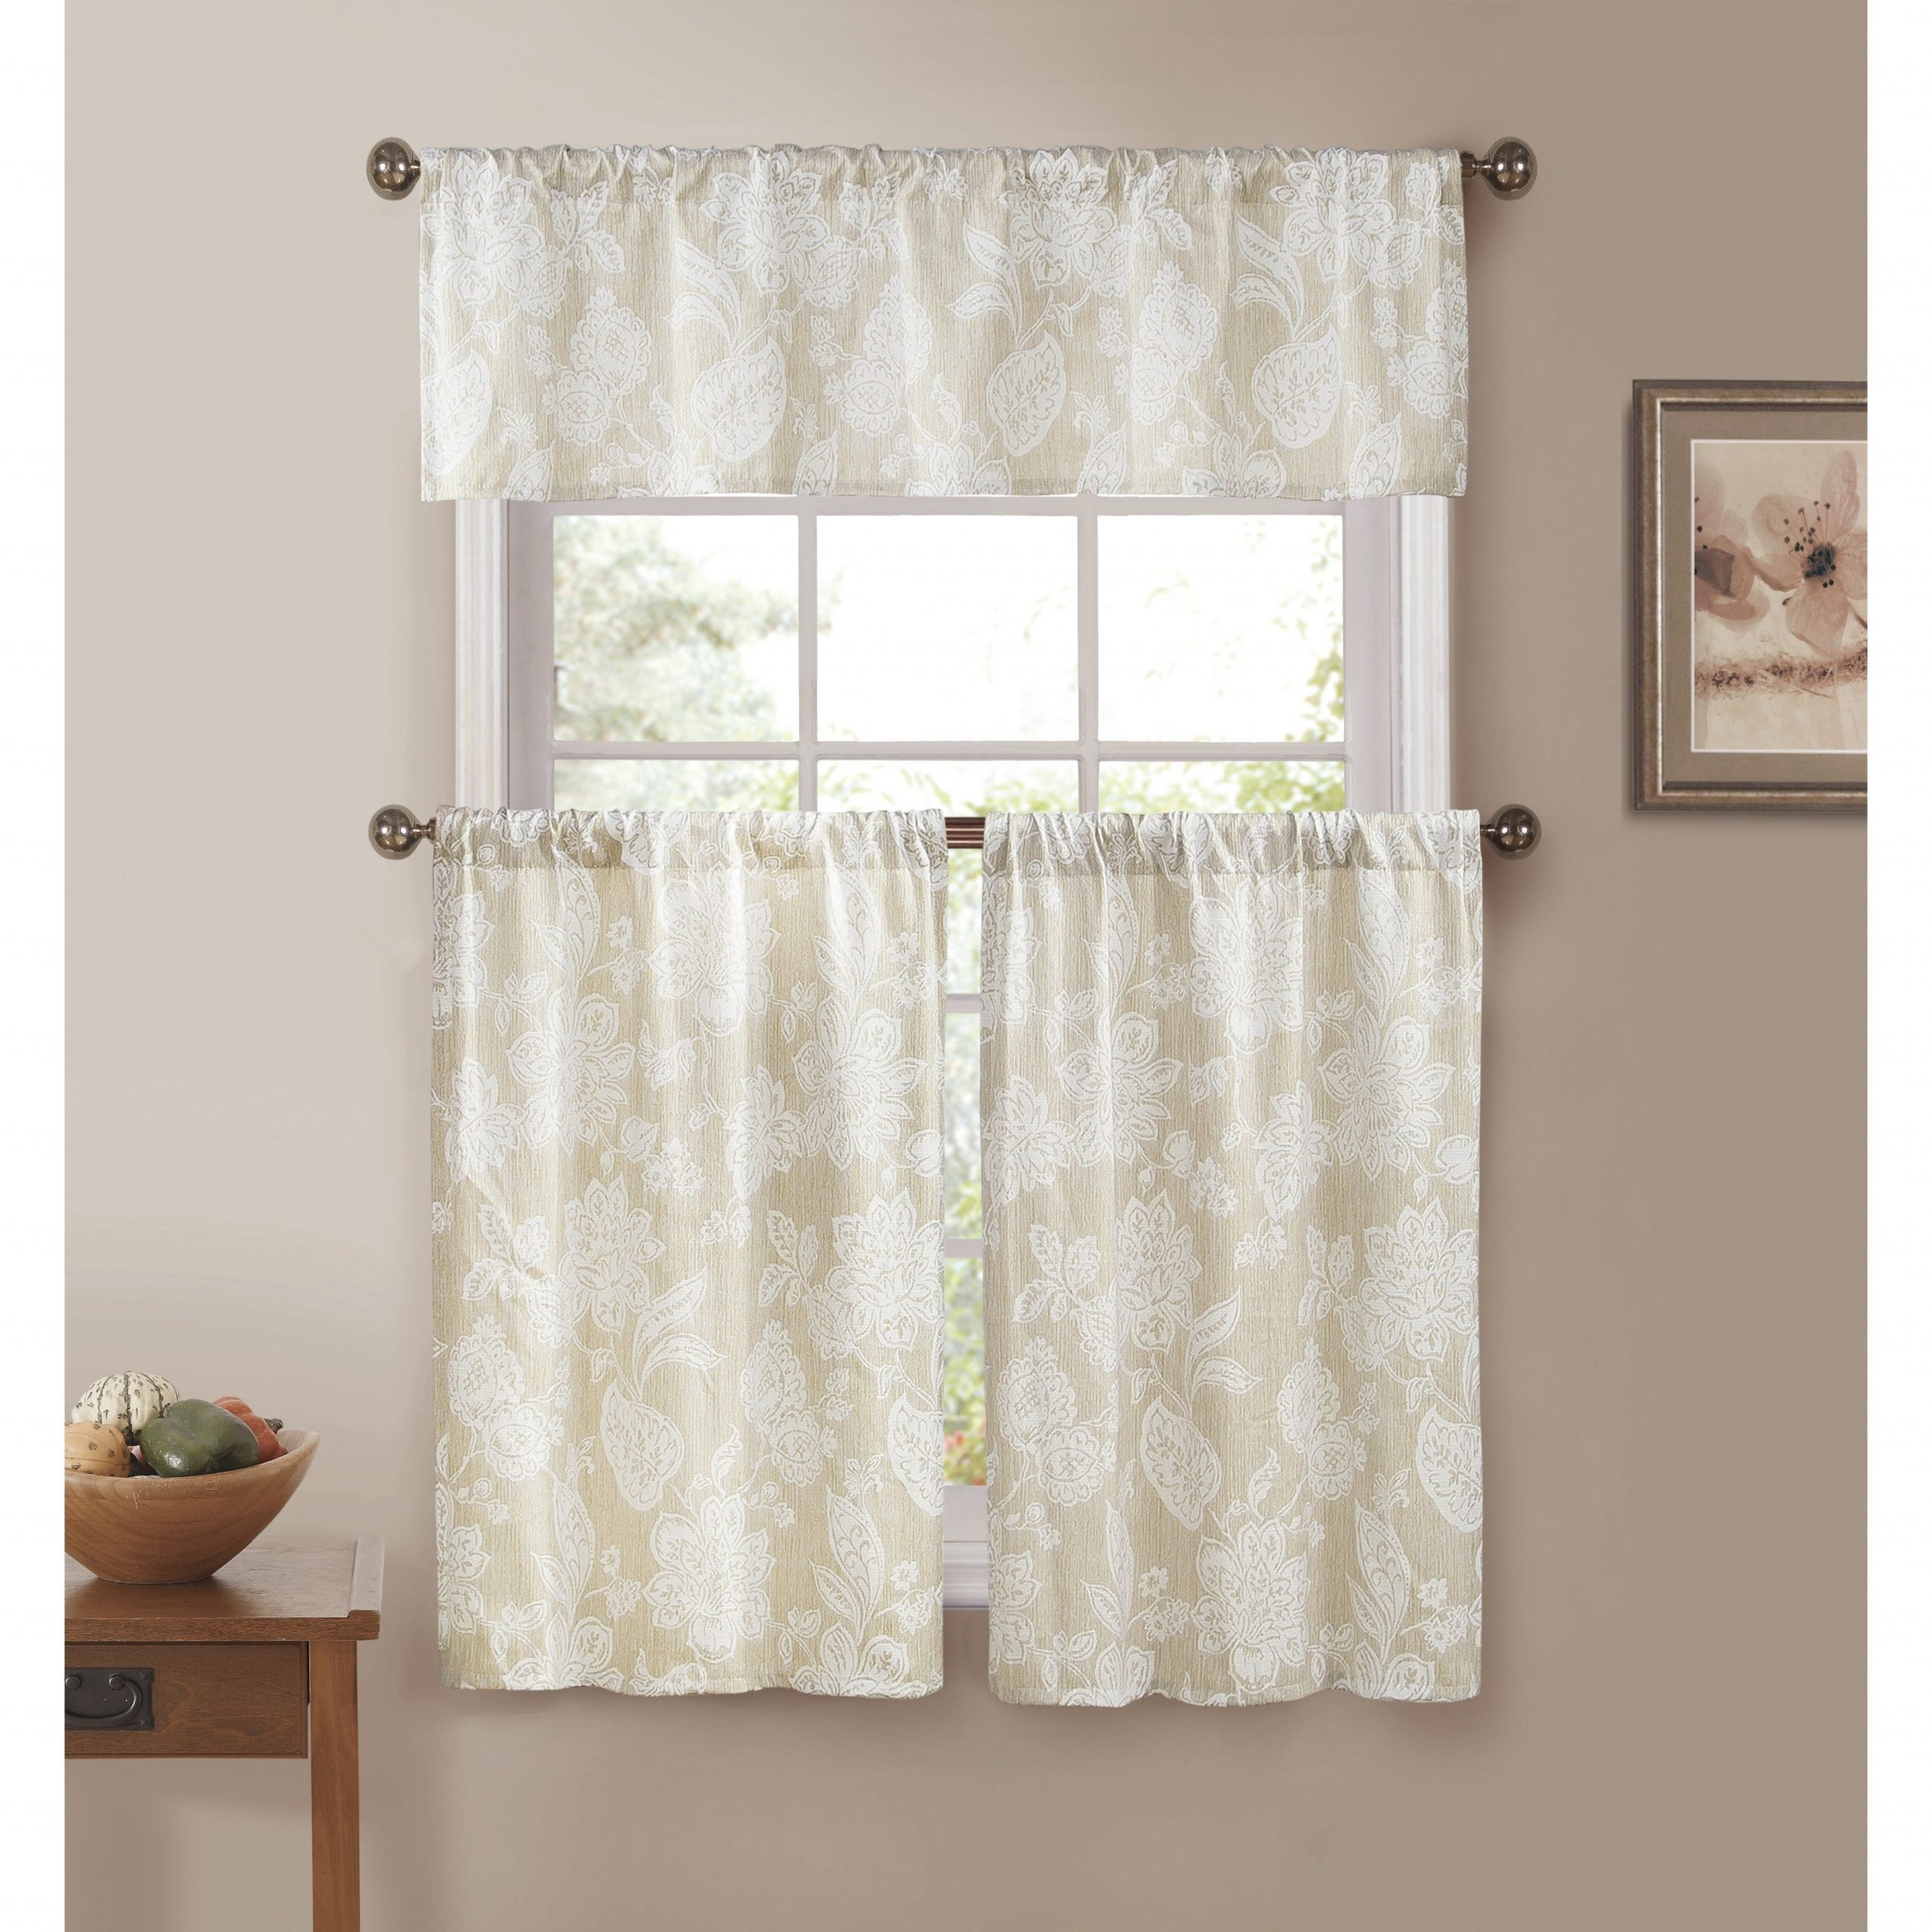 Ewva Linen Look 3 Piece Jacquard Pole Top Kitchen Curtain Set Regarding Scroll Leaf 3 Piece Curtain Tier And Valance Sets (View 10 of 20)